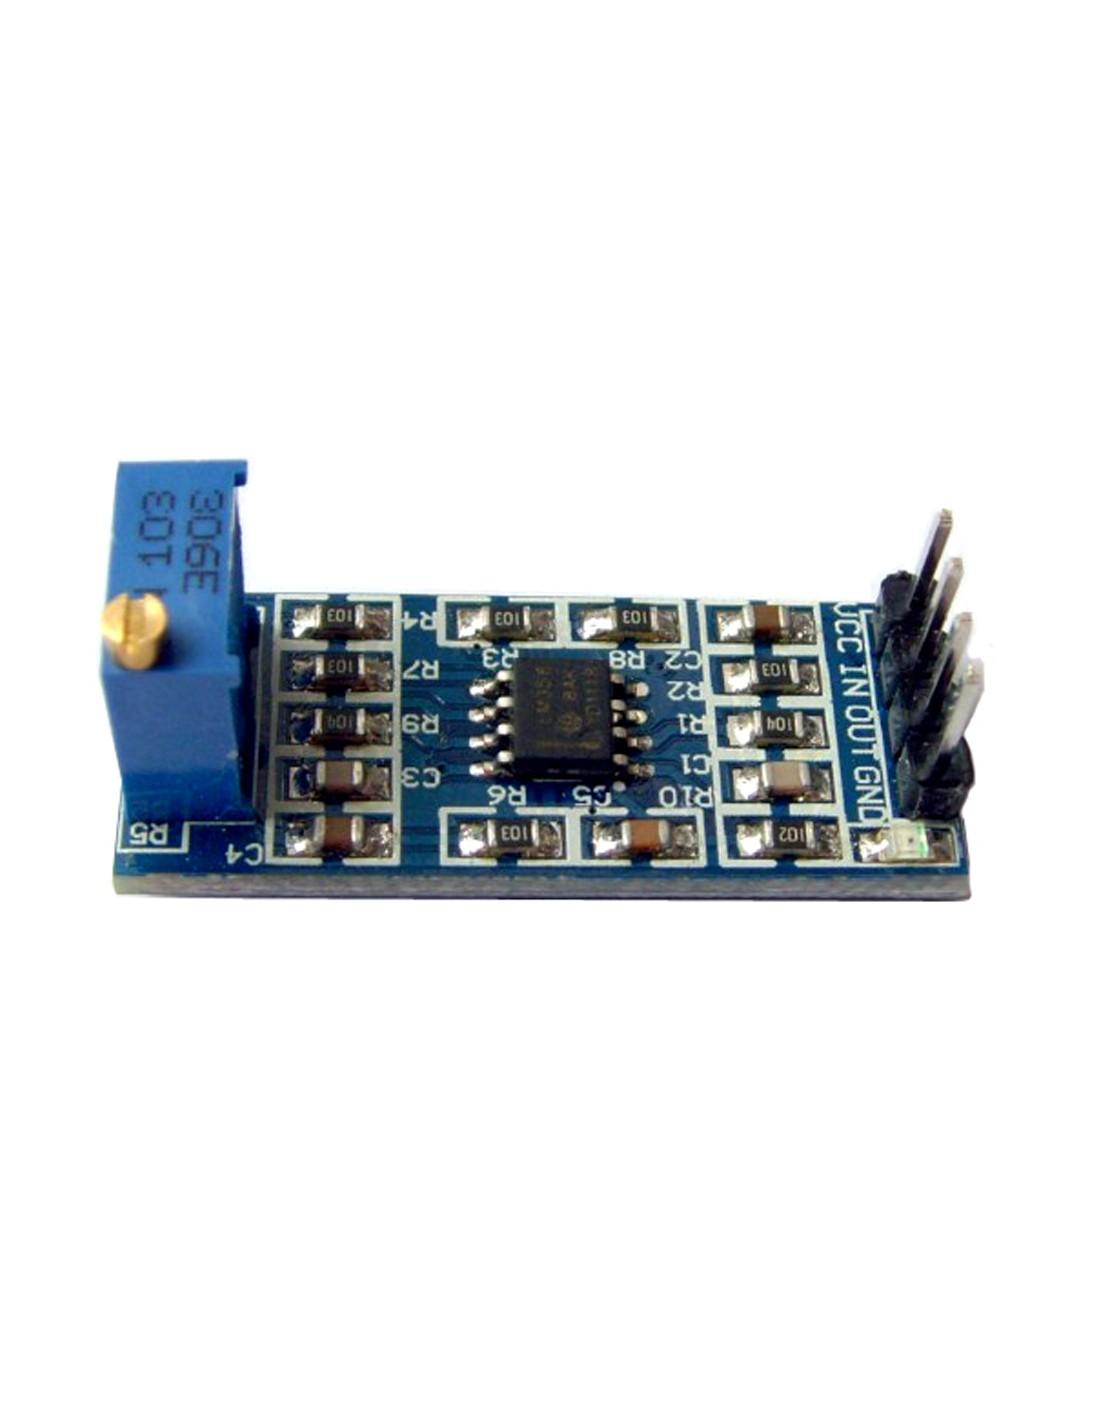 Lm358 Operational Amplifier Module Single Chip Audio Preamplifier Lm 358 Tap To Zoom